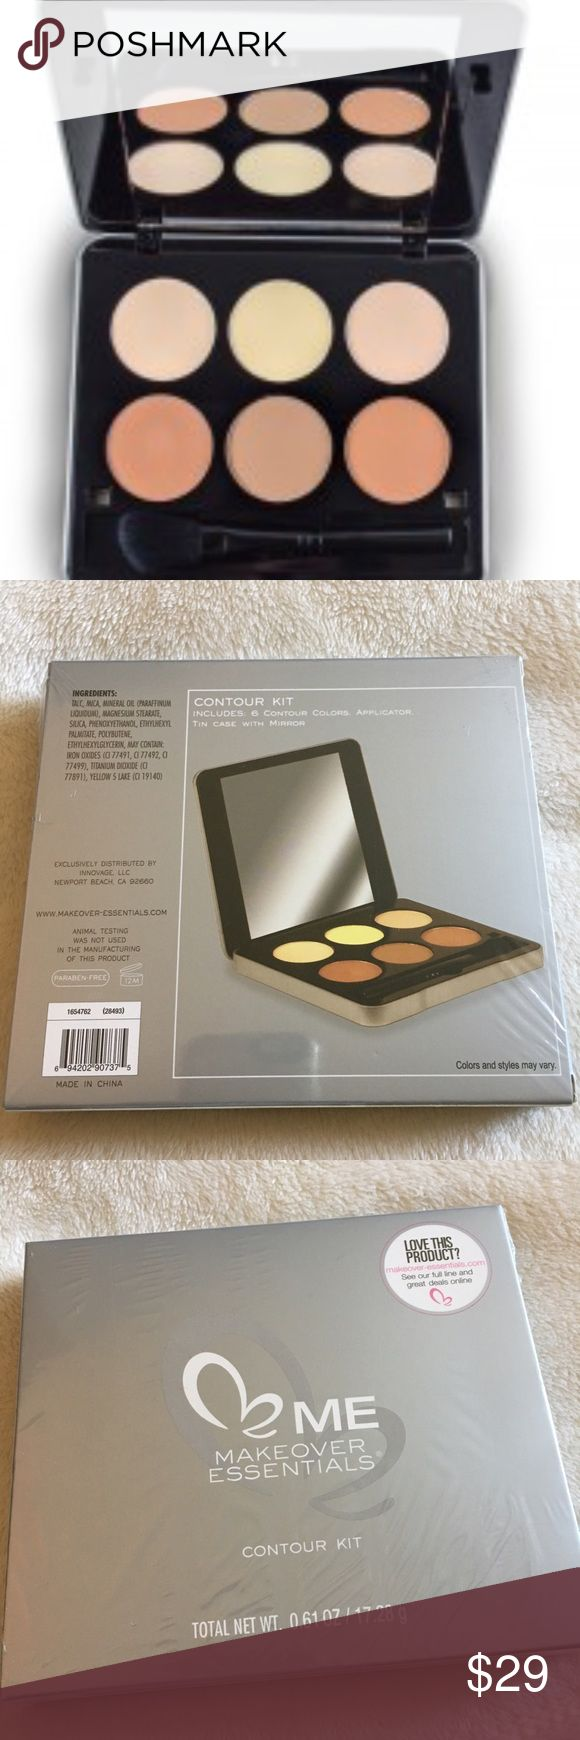 Makeover Essentials Makeup Reviews: BRUSH Included Dive Into The